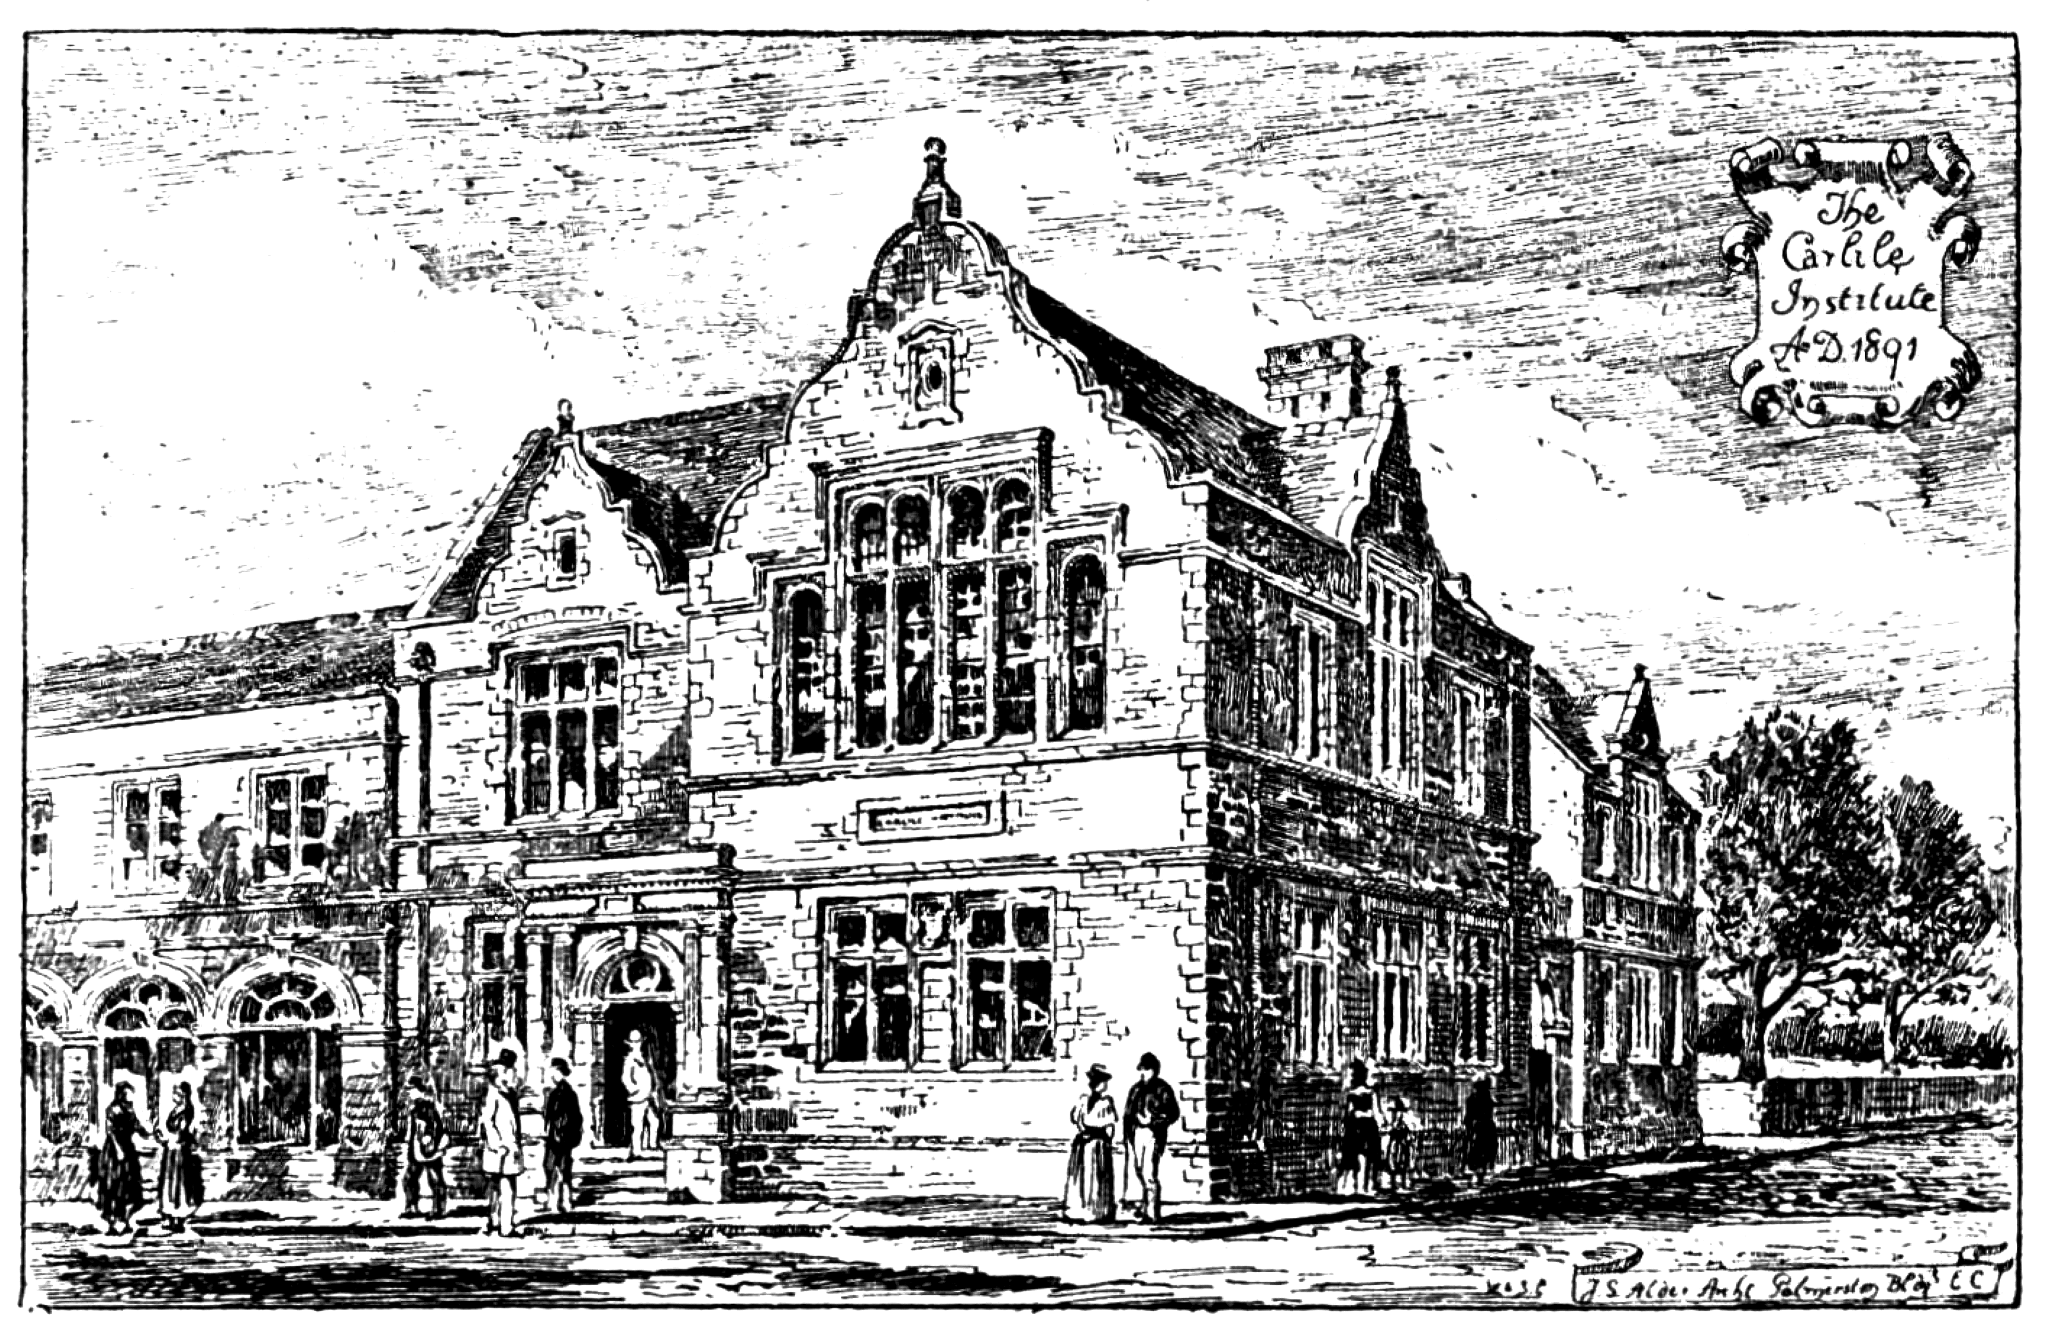 Drawing of the Carlile Institute by architect John Samuel Alder (1848-1919) of London.